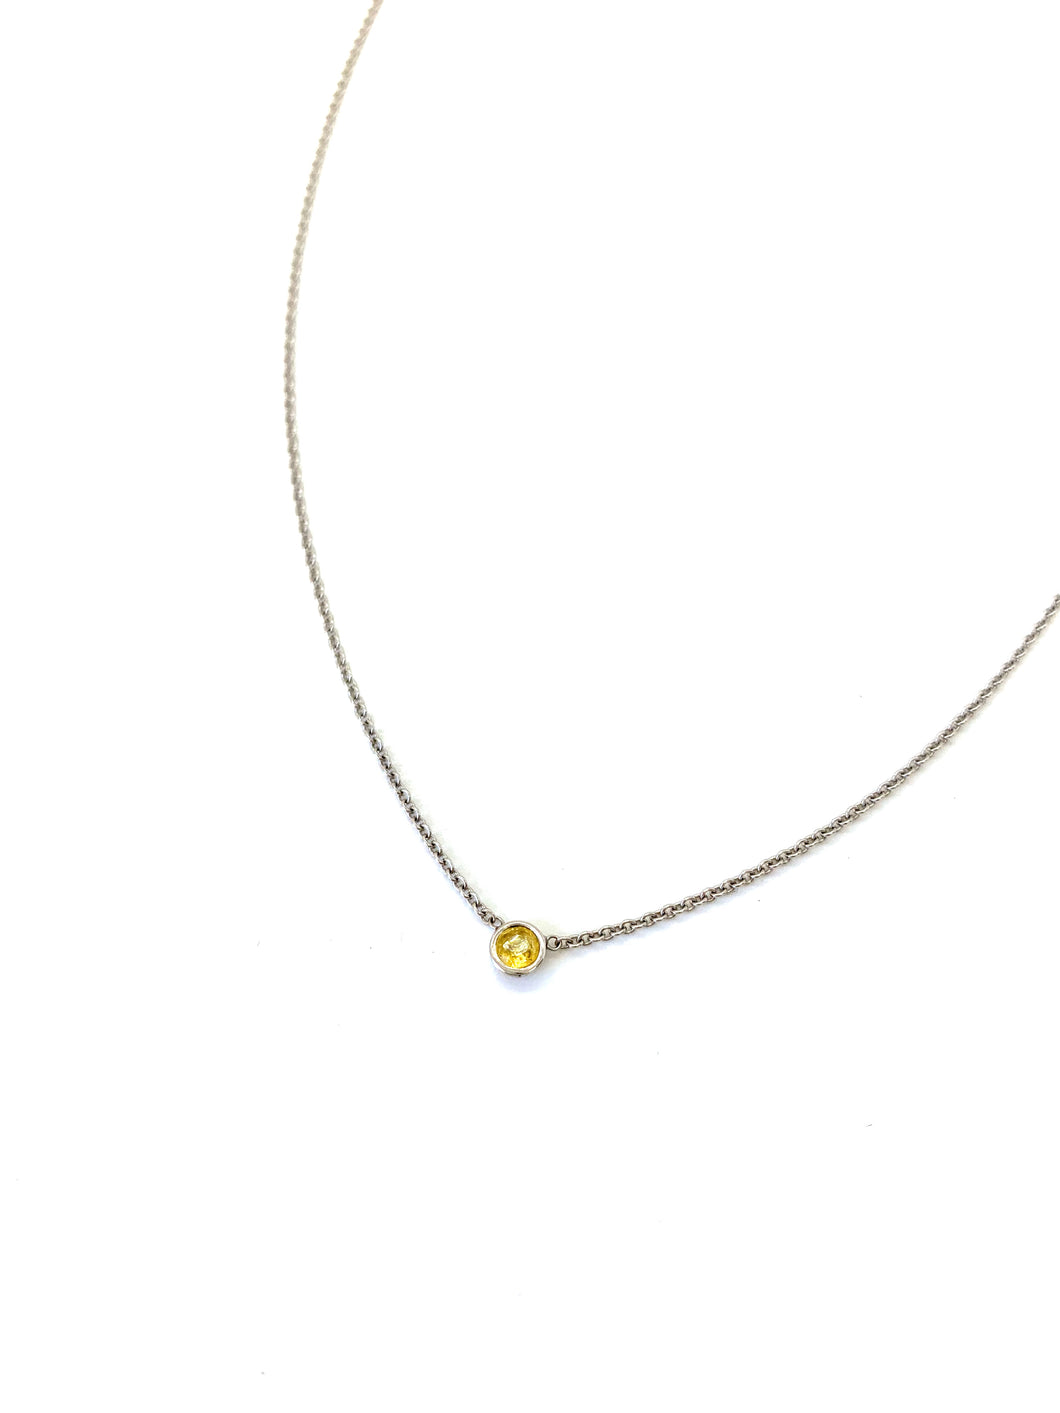 Connect to solar plexus chakra for power, confidence & strength with our yellow sapphire energy necklace. Materials include a 16-inch 14k white gold chain with a 3mm yellow sapphire gemstone. These necklaces are custom designed and hand assembled in the US. Custom variations are available by Contacting Us.